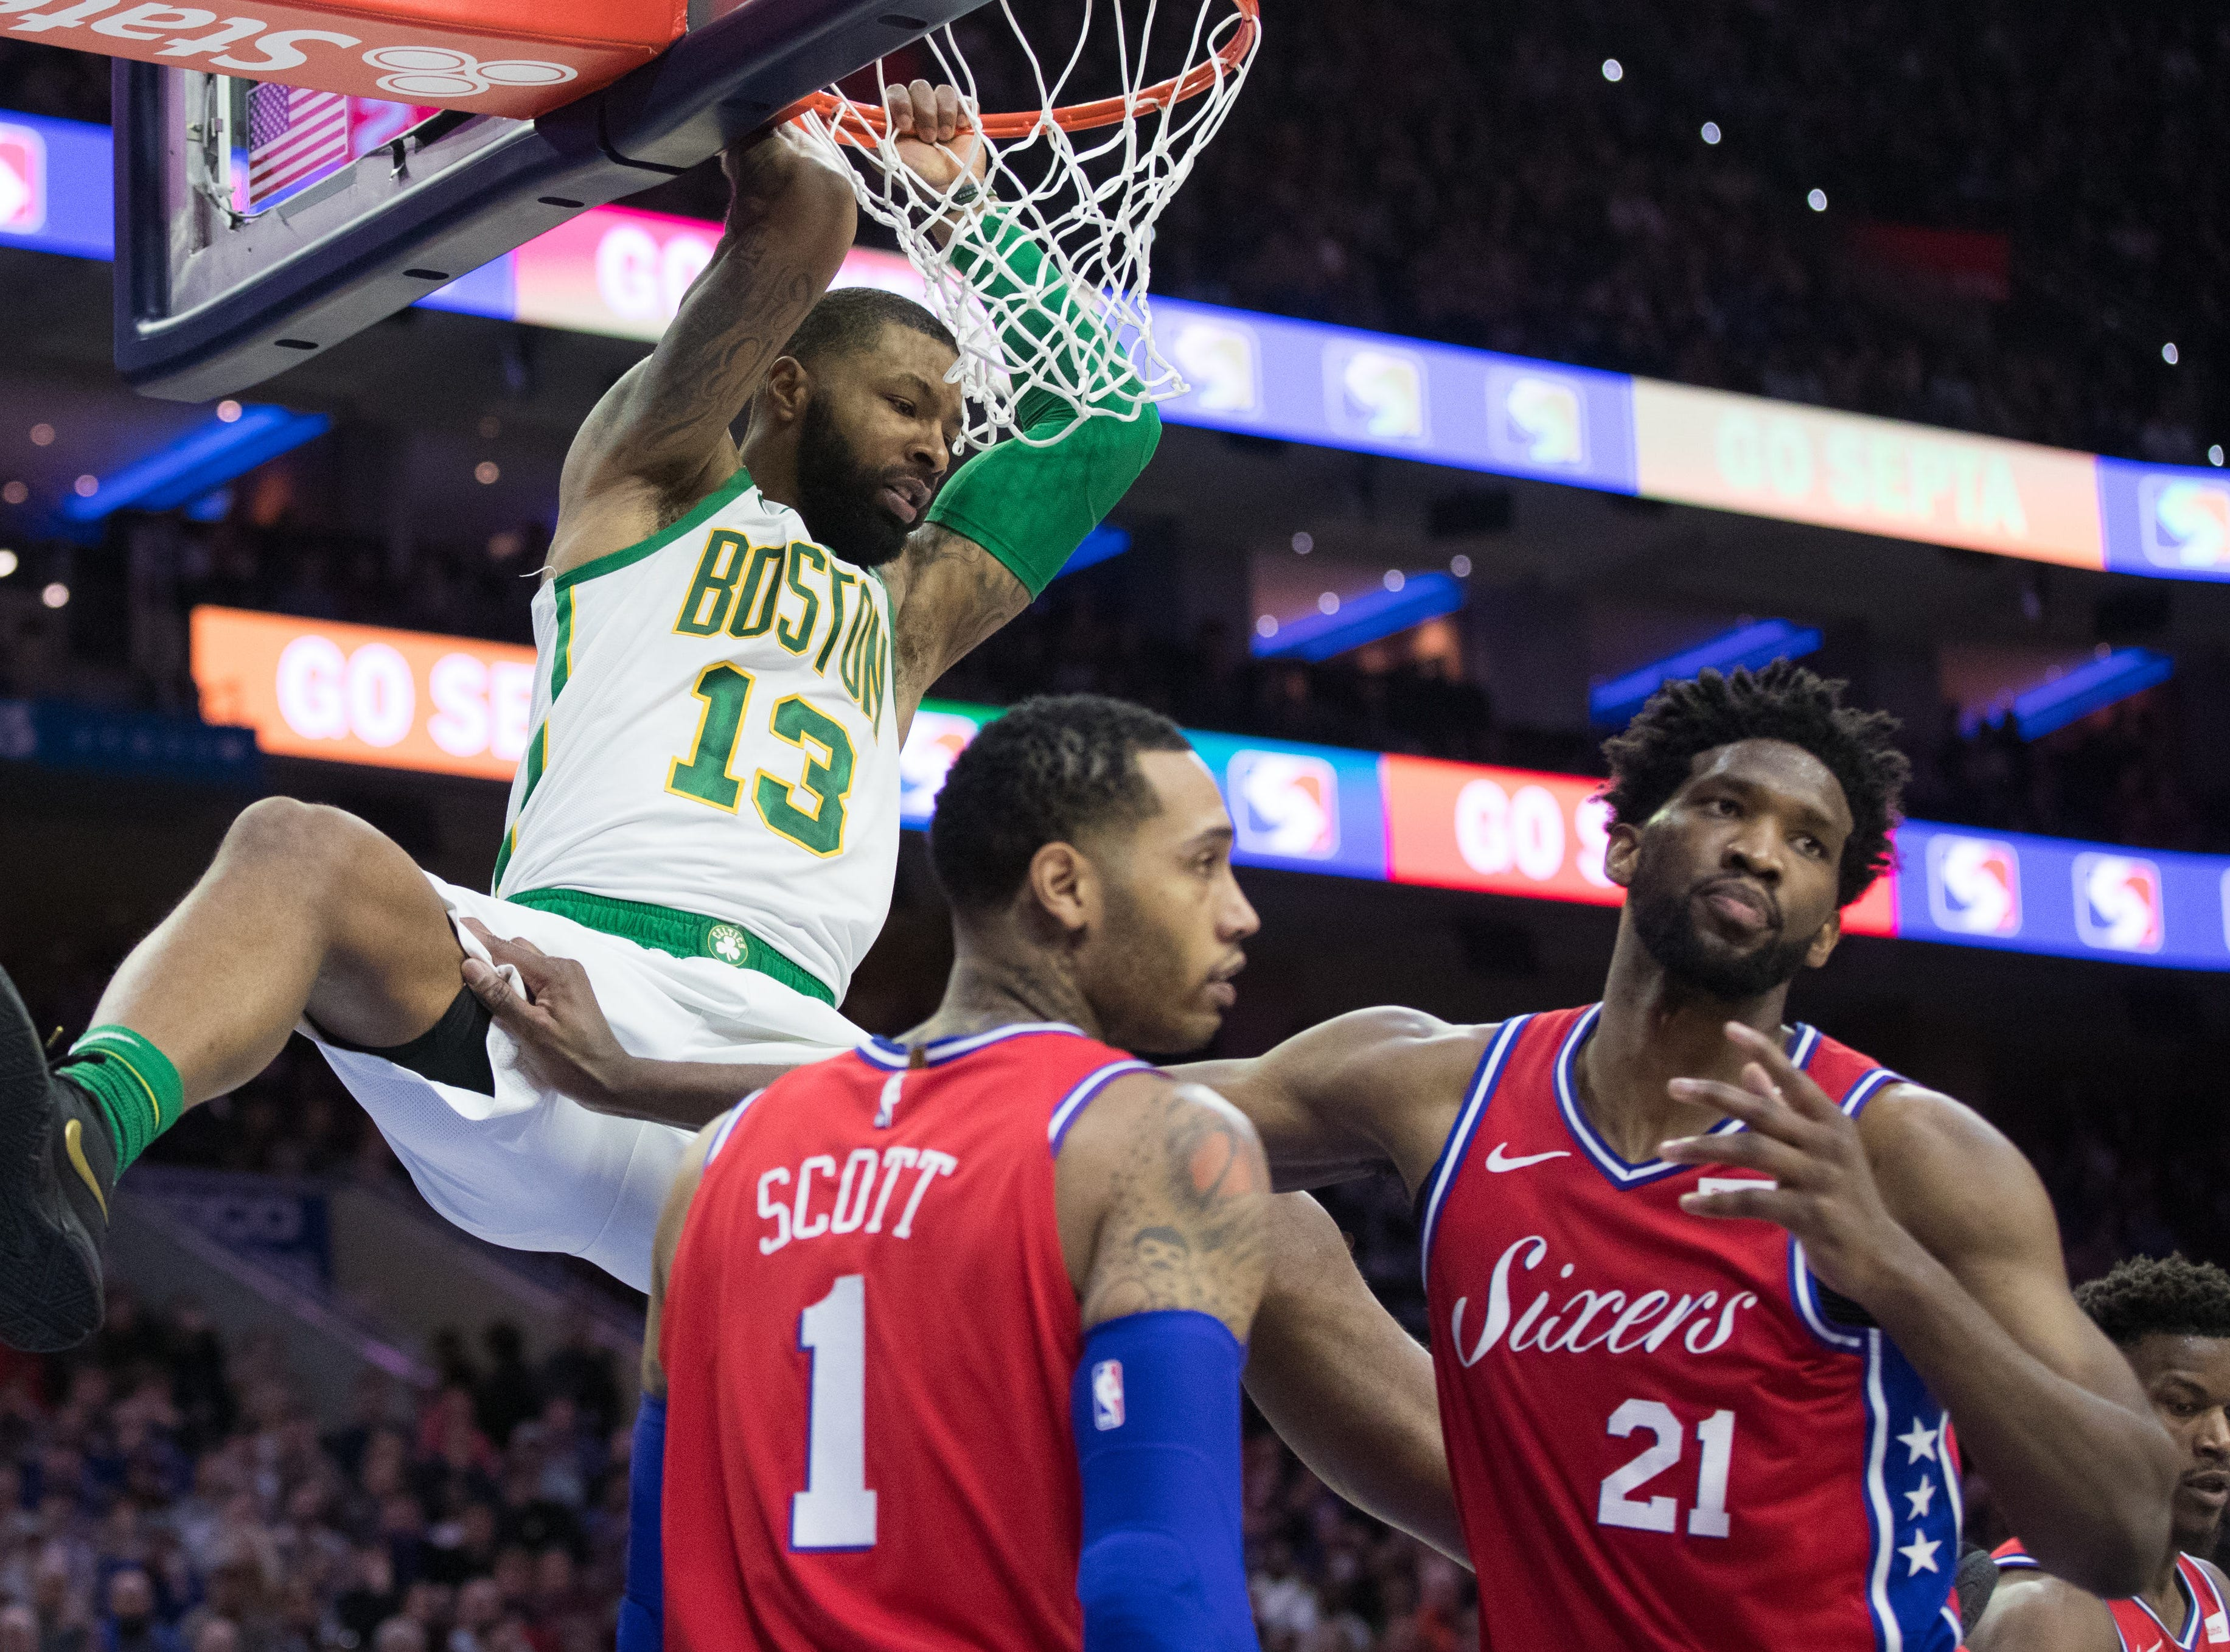 Feb. 12: Philadelphia 76ers center Joel Embiid (21) and forward Mike Scott (1) react as Boston Celtics forward Marcus Morris (13) hangs on the rim after a dunk in the fourth quarter at Wells Fargo Center.